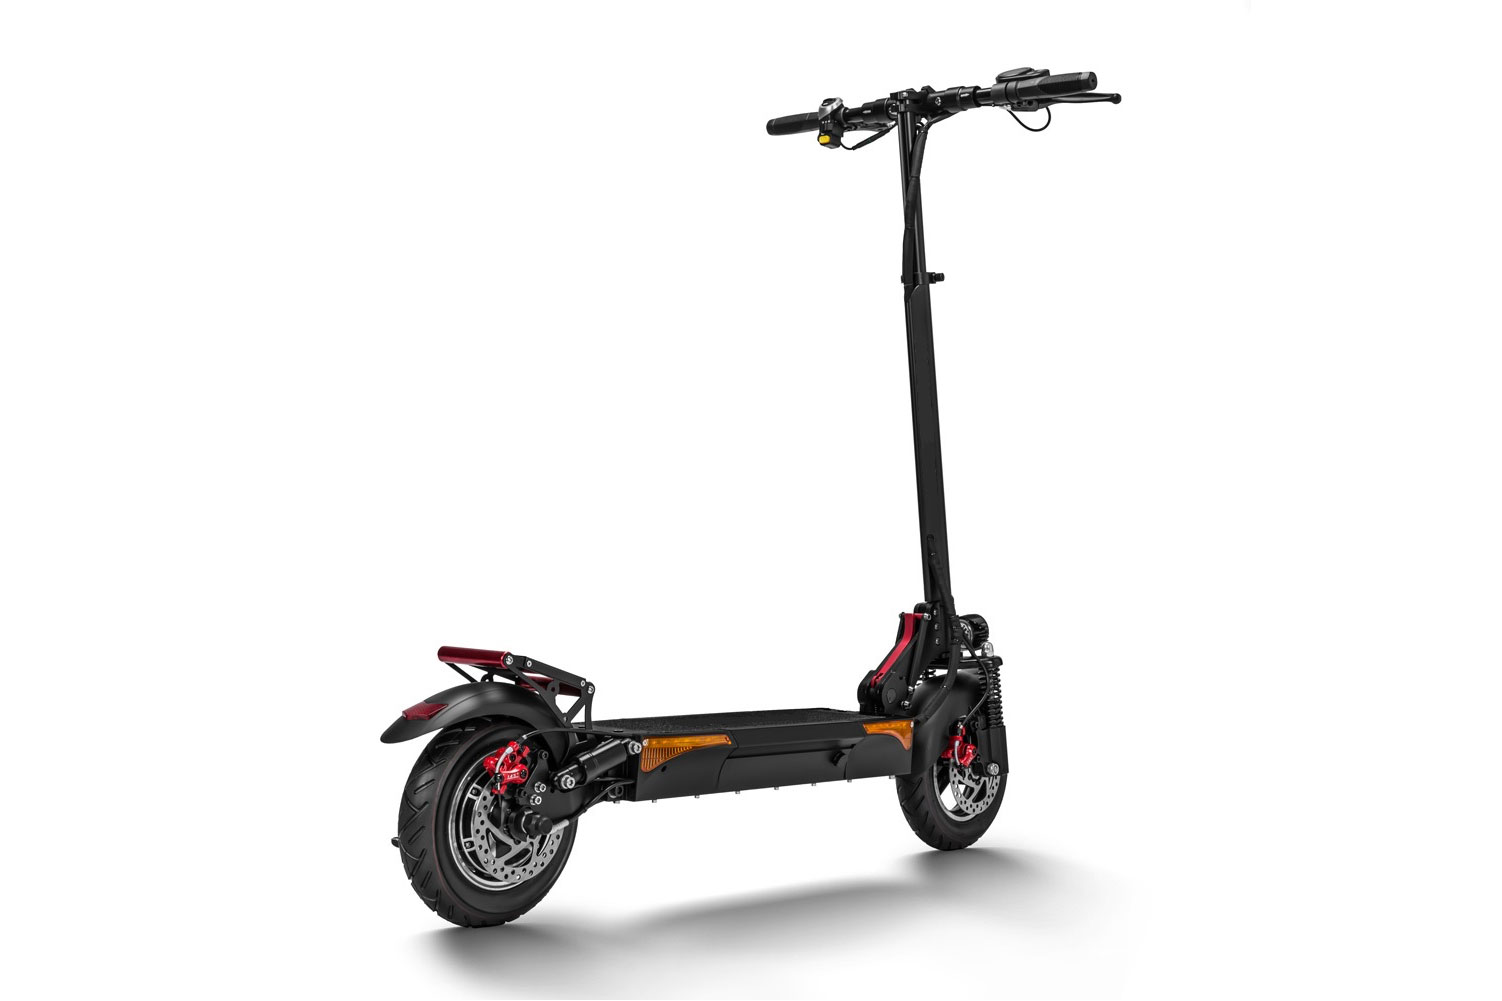 2020 Synergy City Elite 500w Electric Scooter Sale Vintage Iron Cycles Electric Bike Shop